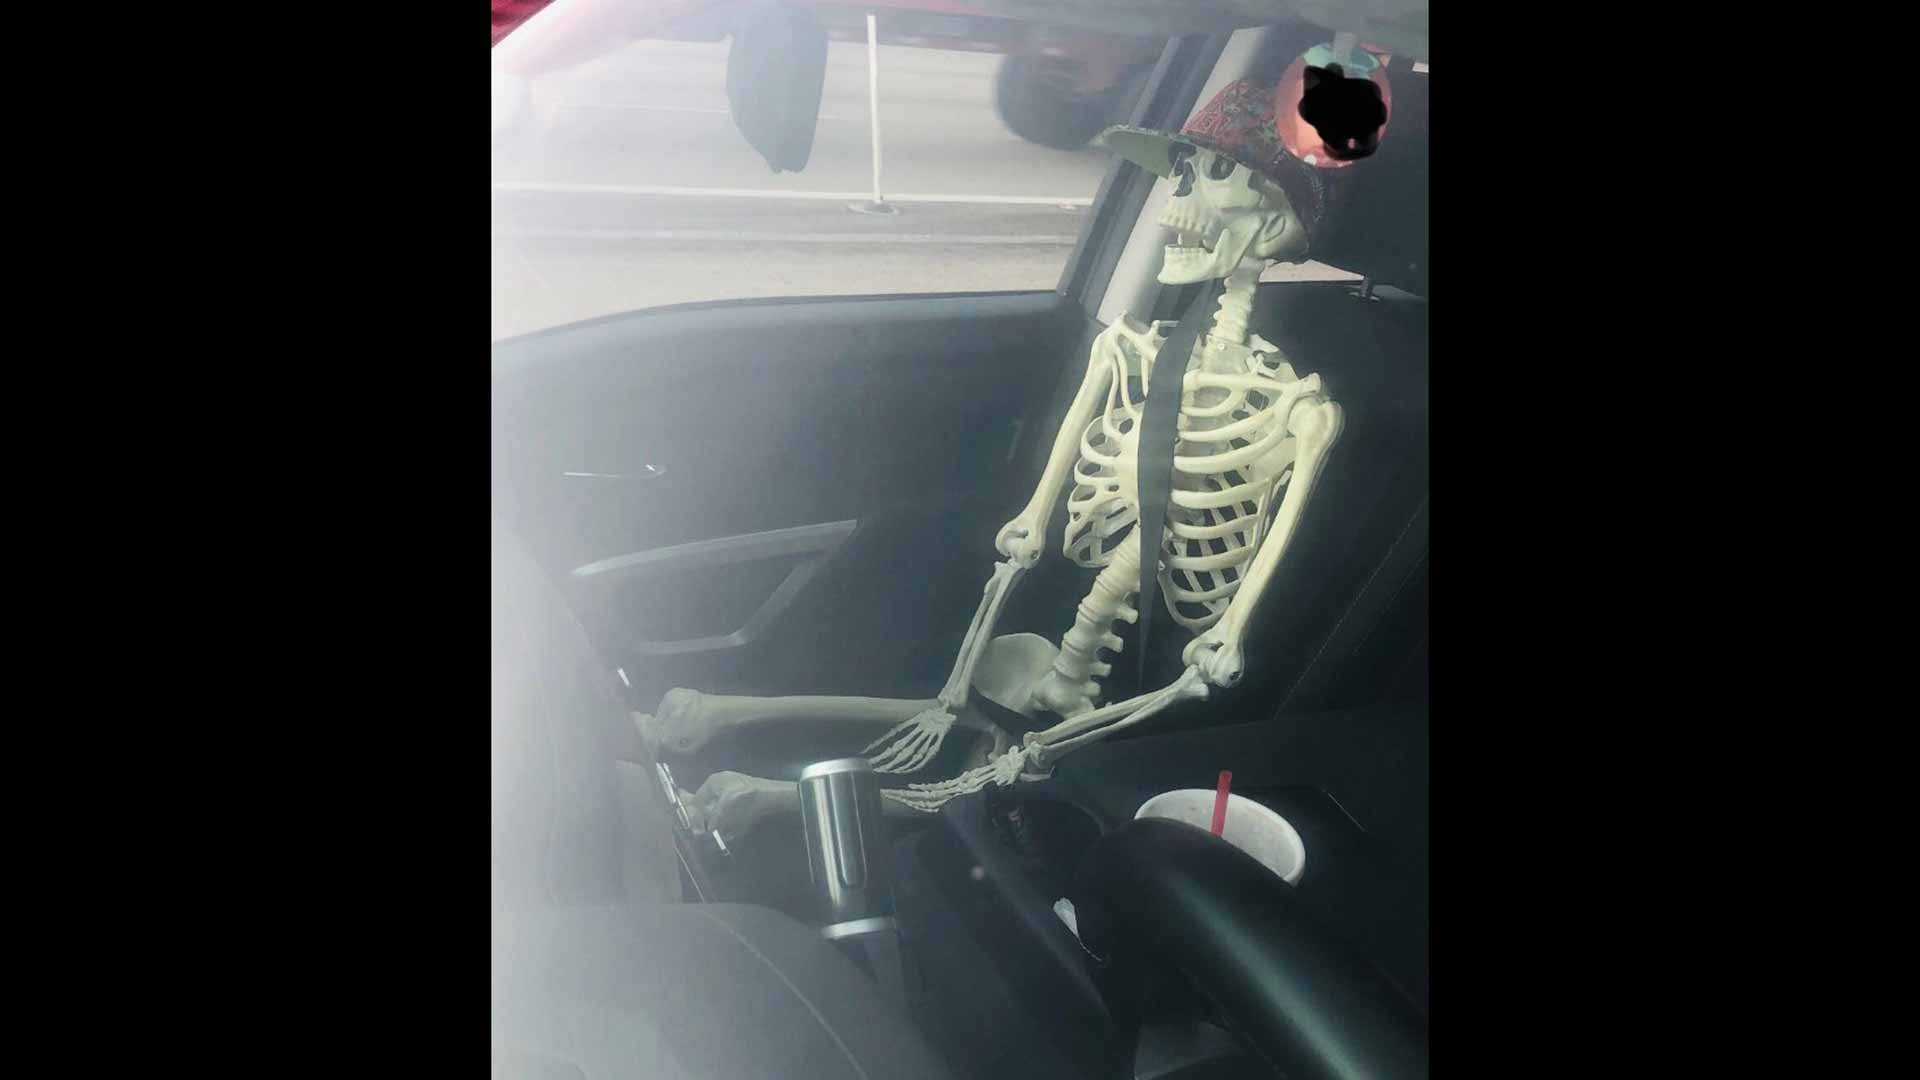 Halloween season is officially here as Texas man tries to fool police by carpooling with skeleton